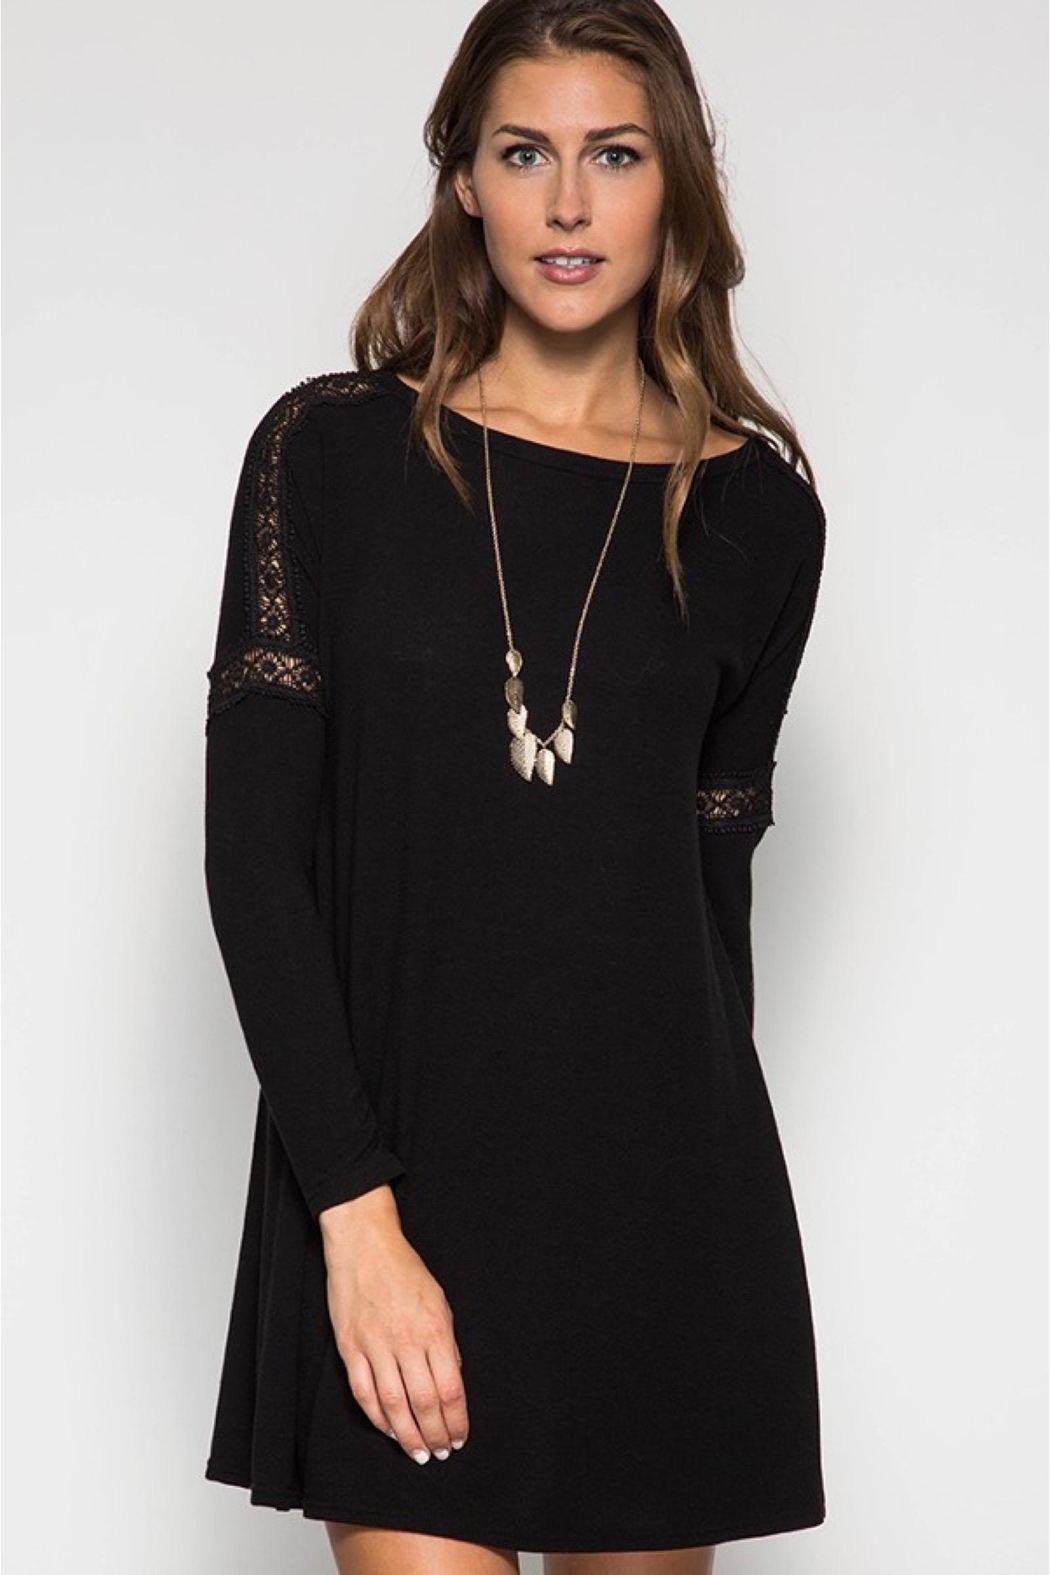 People Outfitter Black Tunic Dress - Main Image